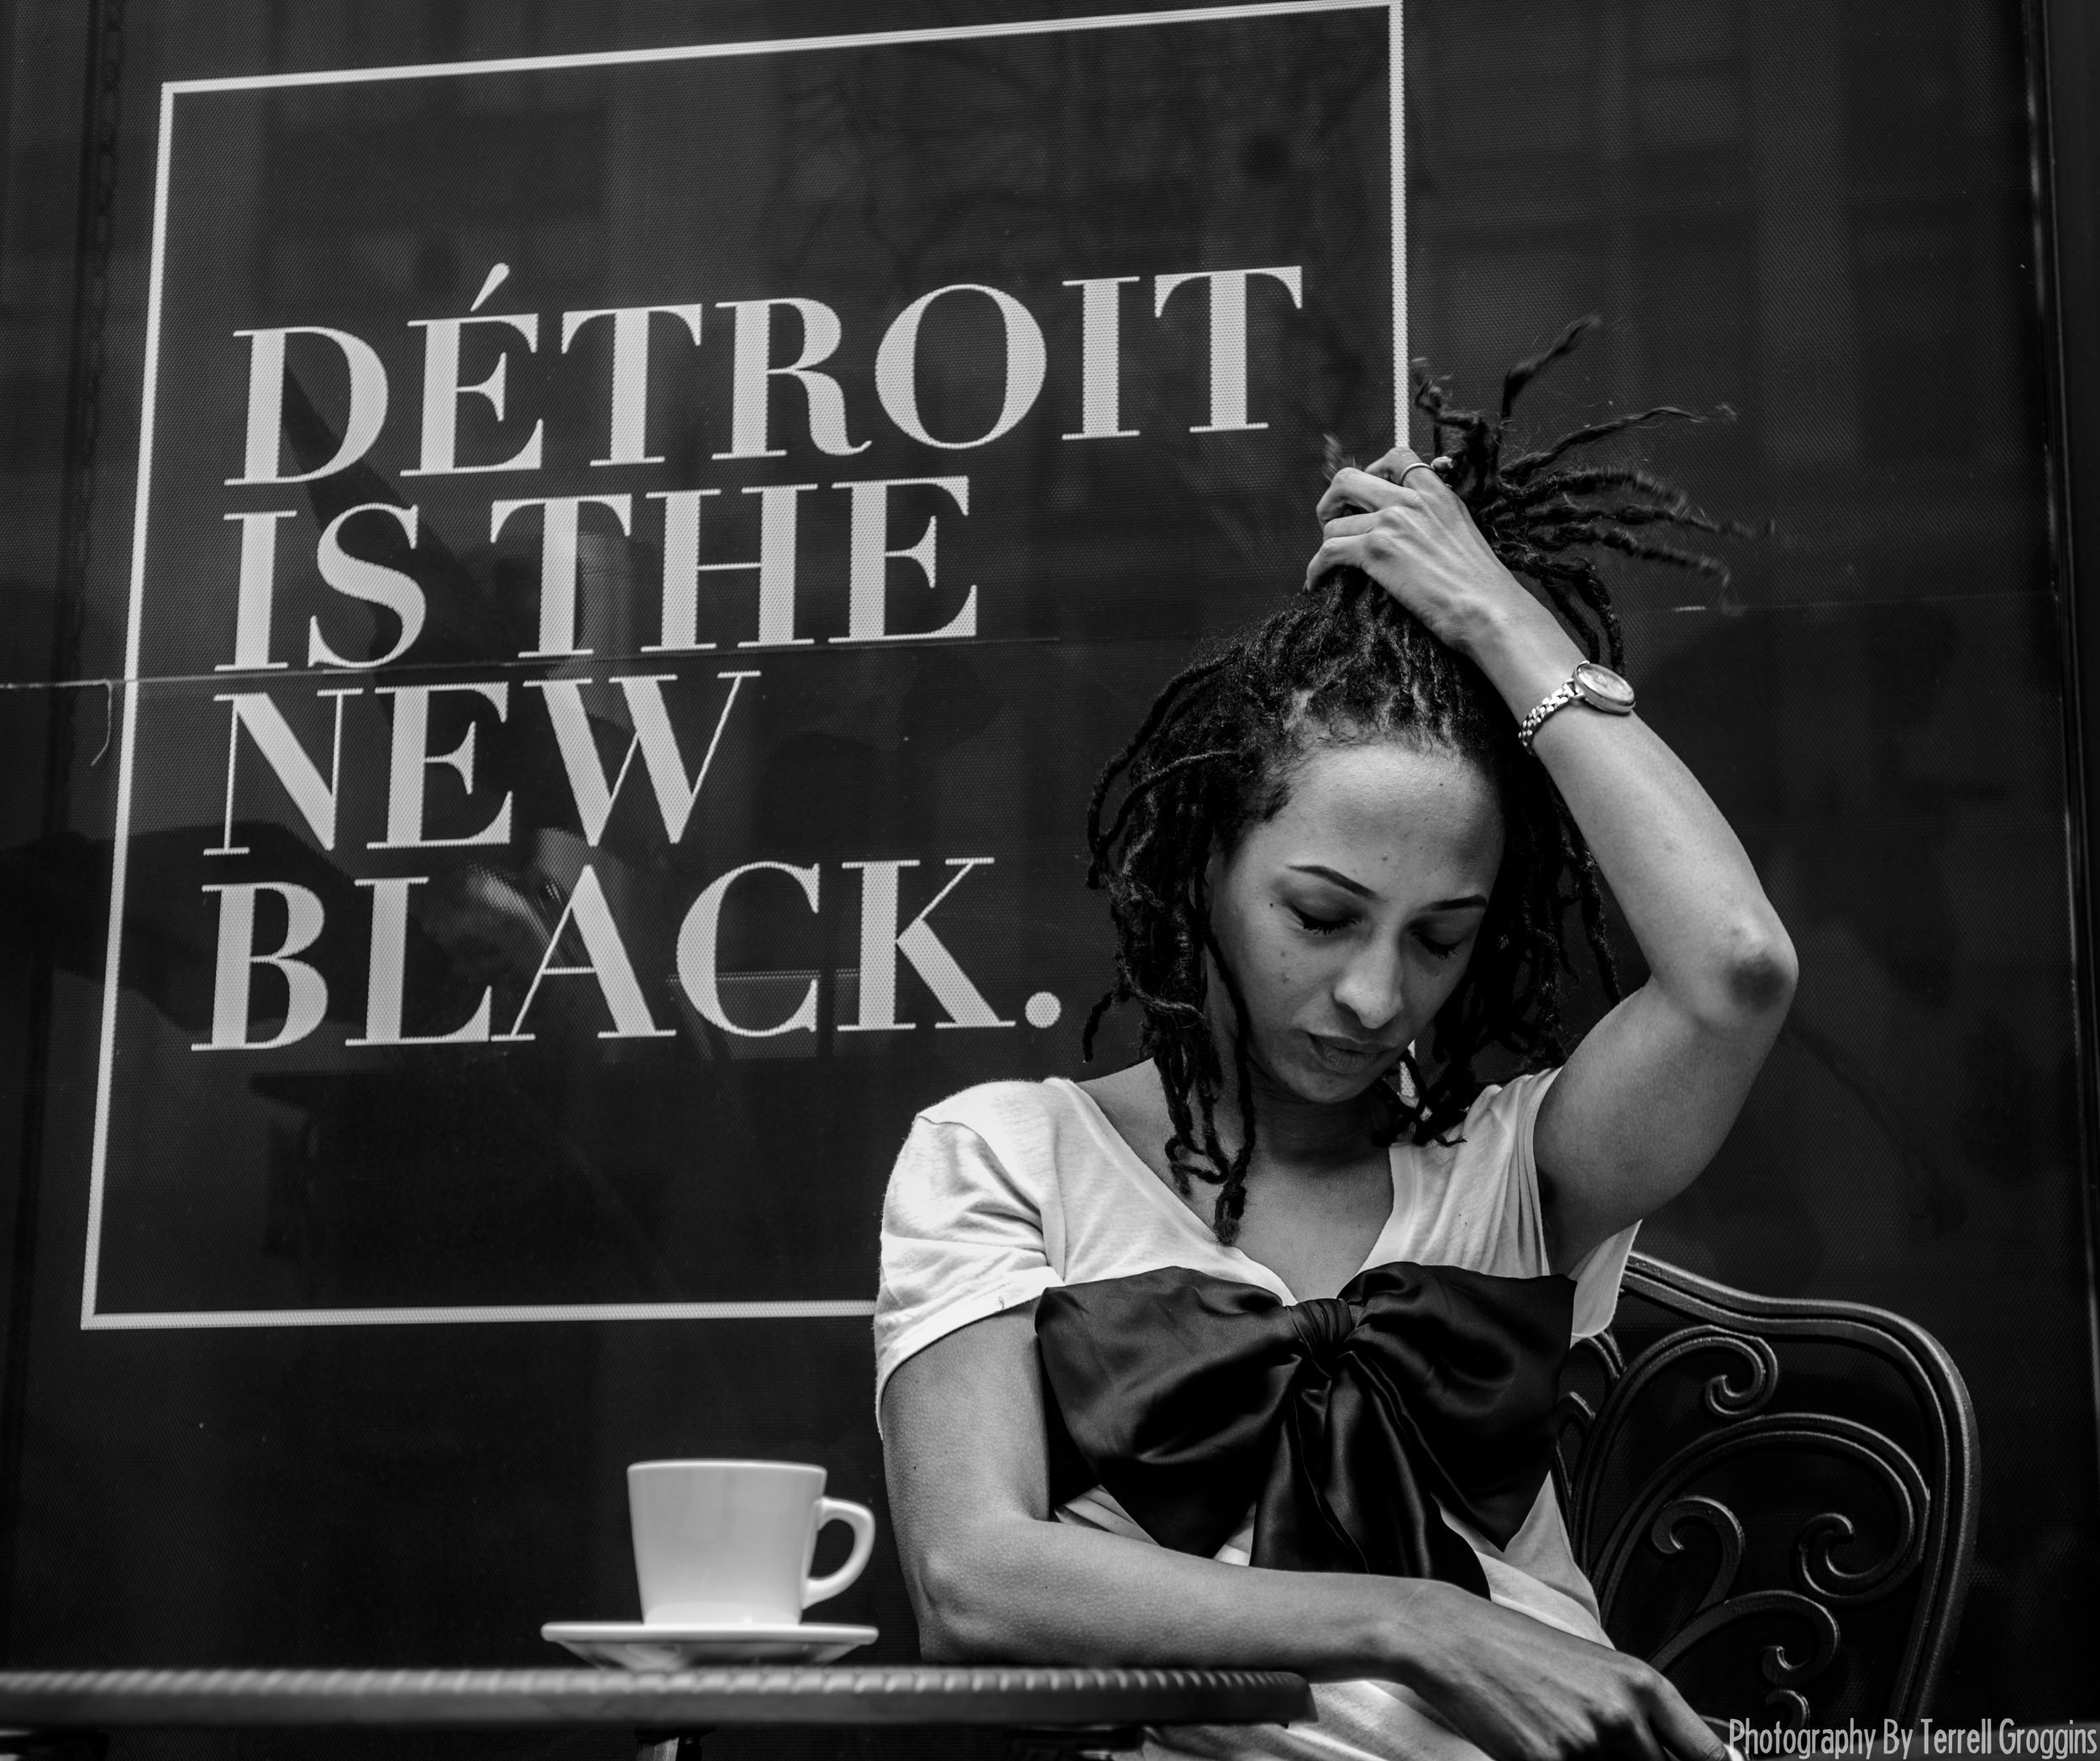 Detroit is the new black  is a clothing store in Detroit